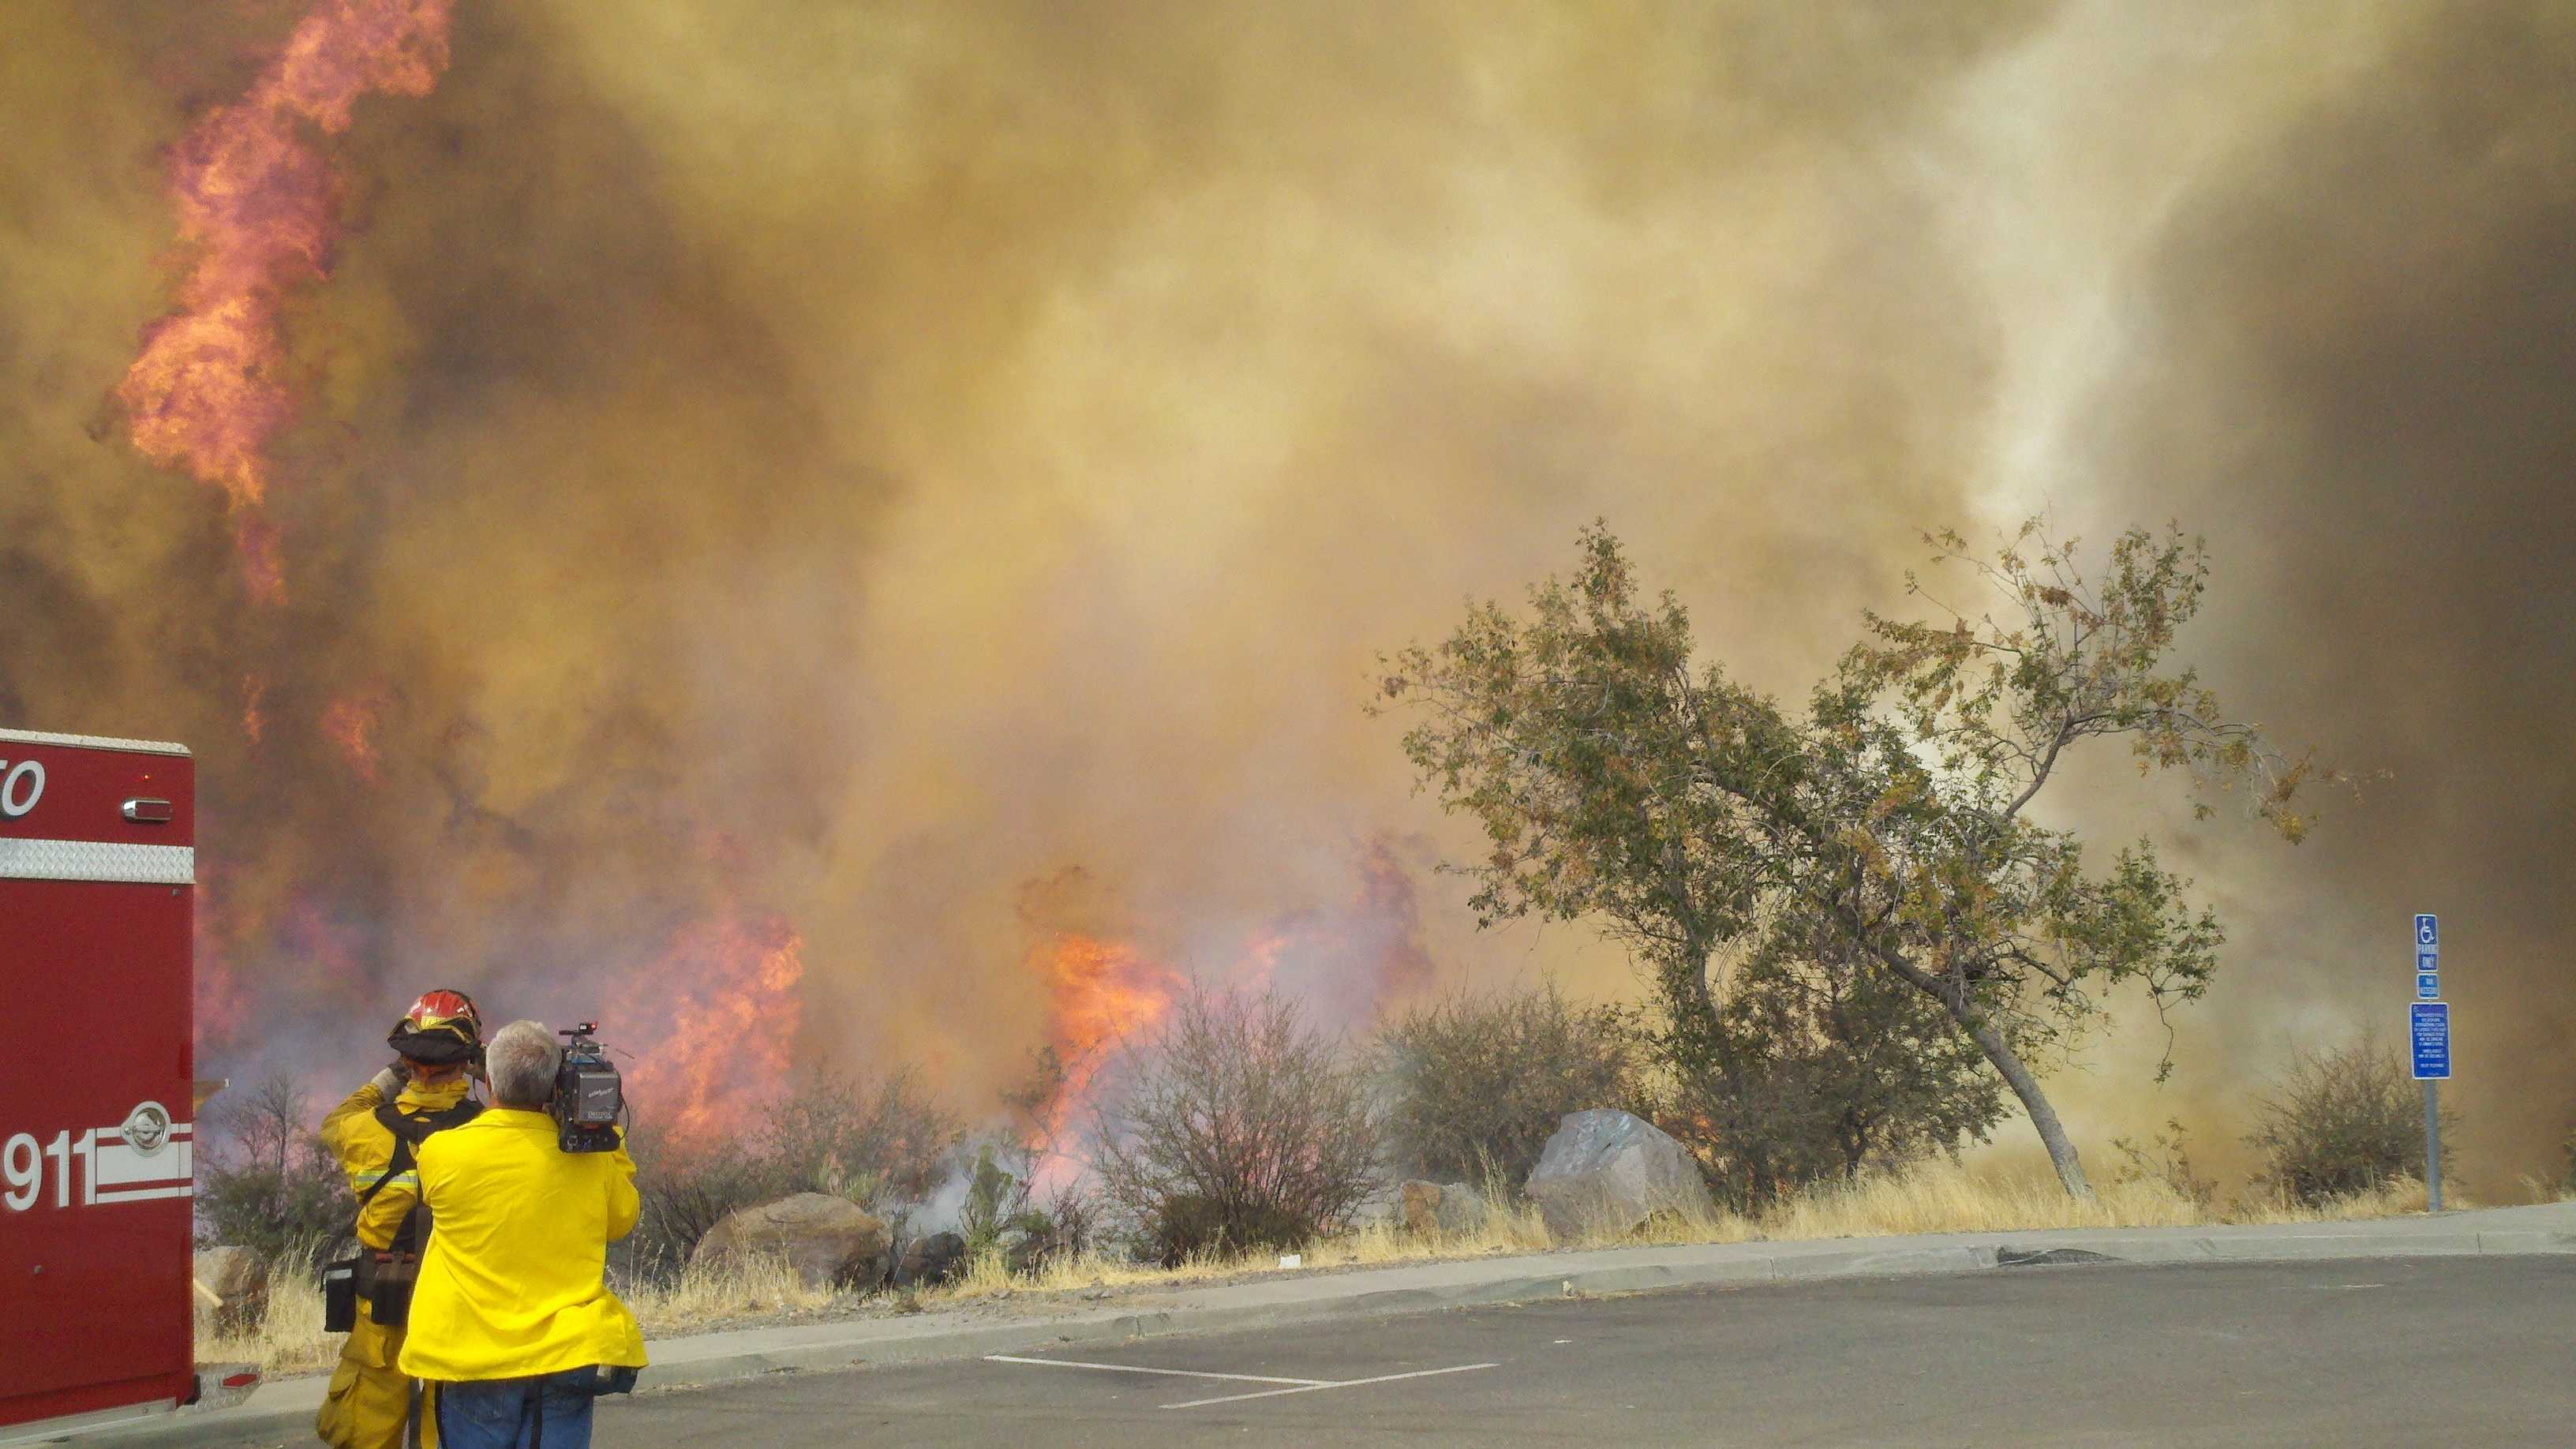 WednesdayGov. Jerry Brown has declared a state of emergency in three Northern California counties where wildfires have forced evacuations, closed roads and destroyed dozens of homes and other structures.